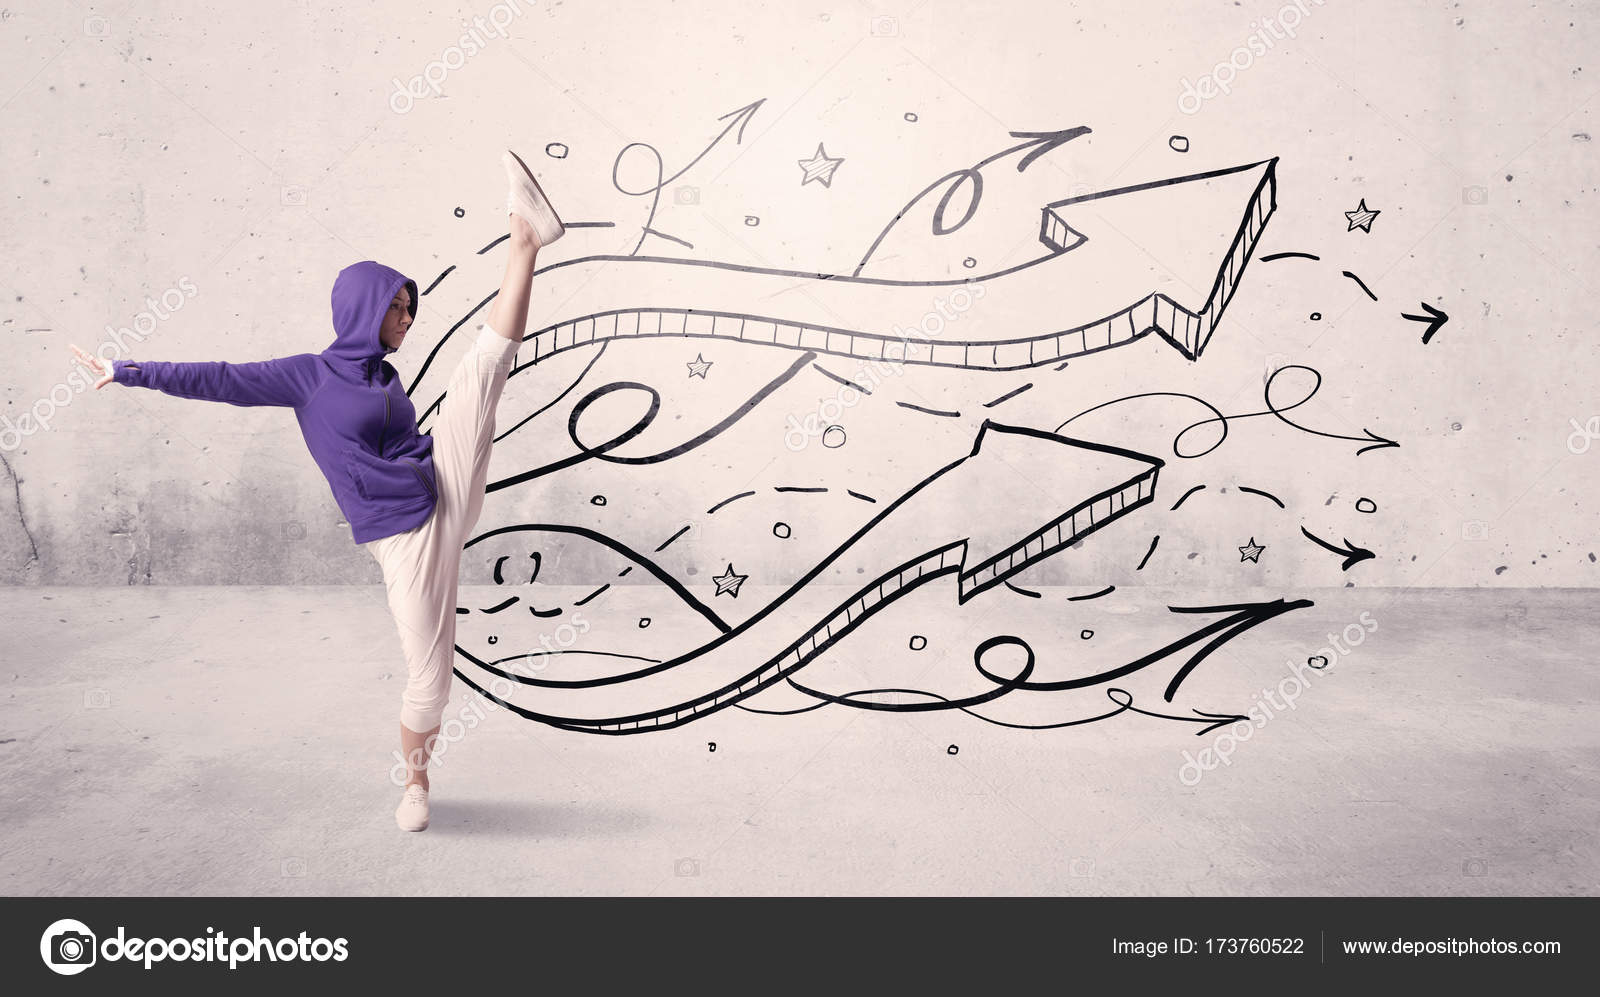 Drawing Lines With Arrows In Photo : Street dancer with arrows and stars u stock photo ra studio